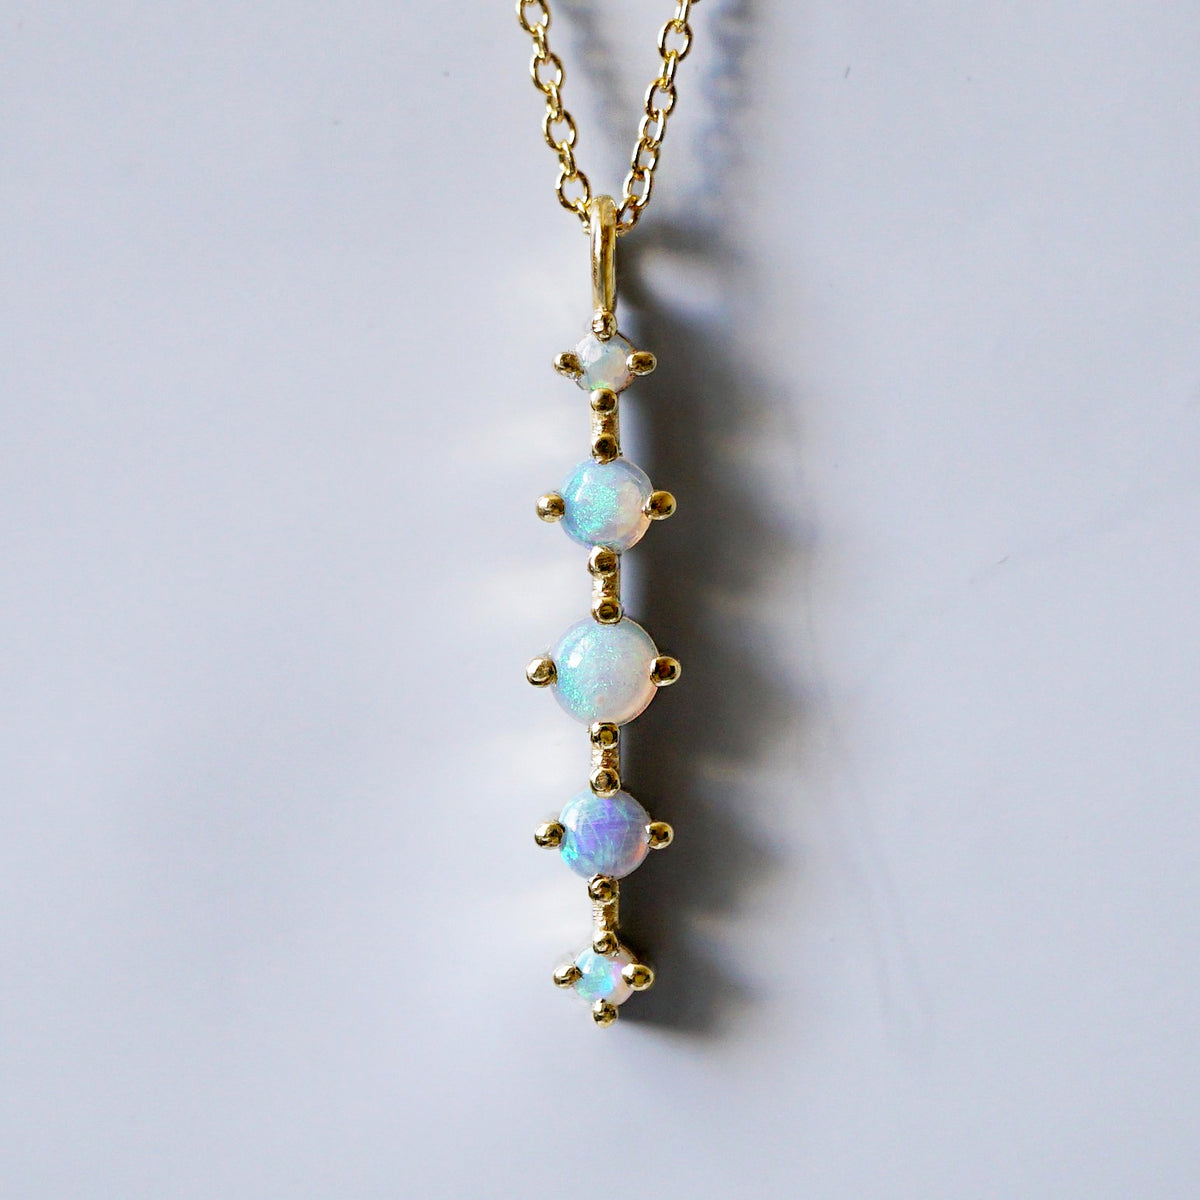 14K Opal Waterfall Necklace